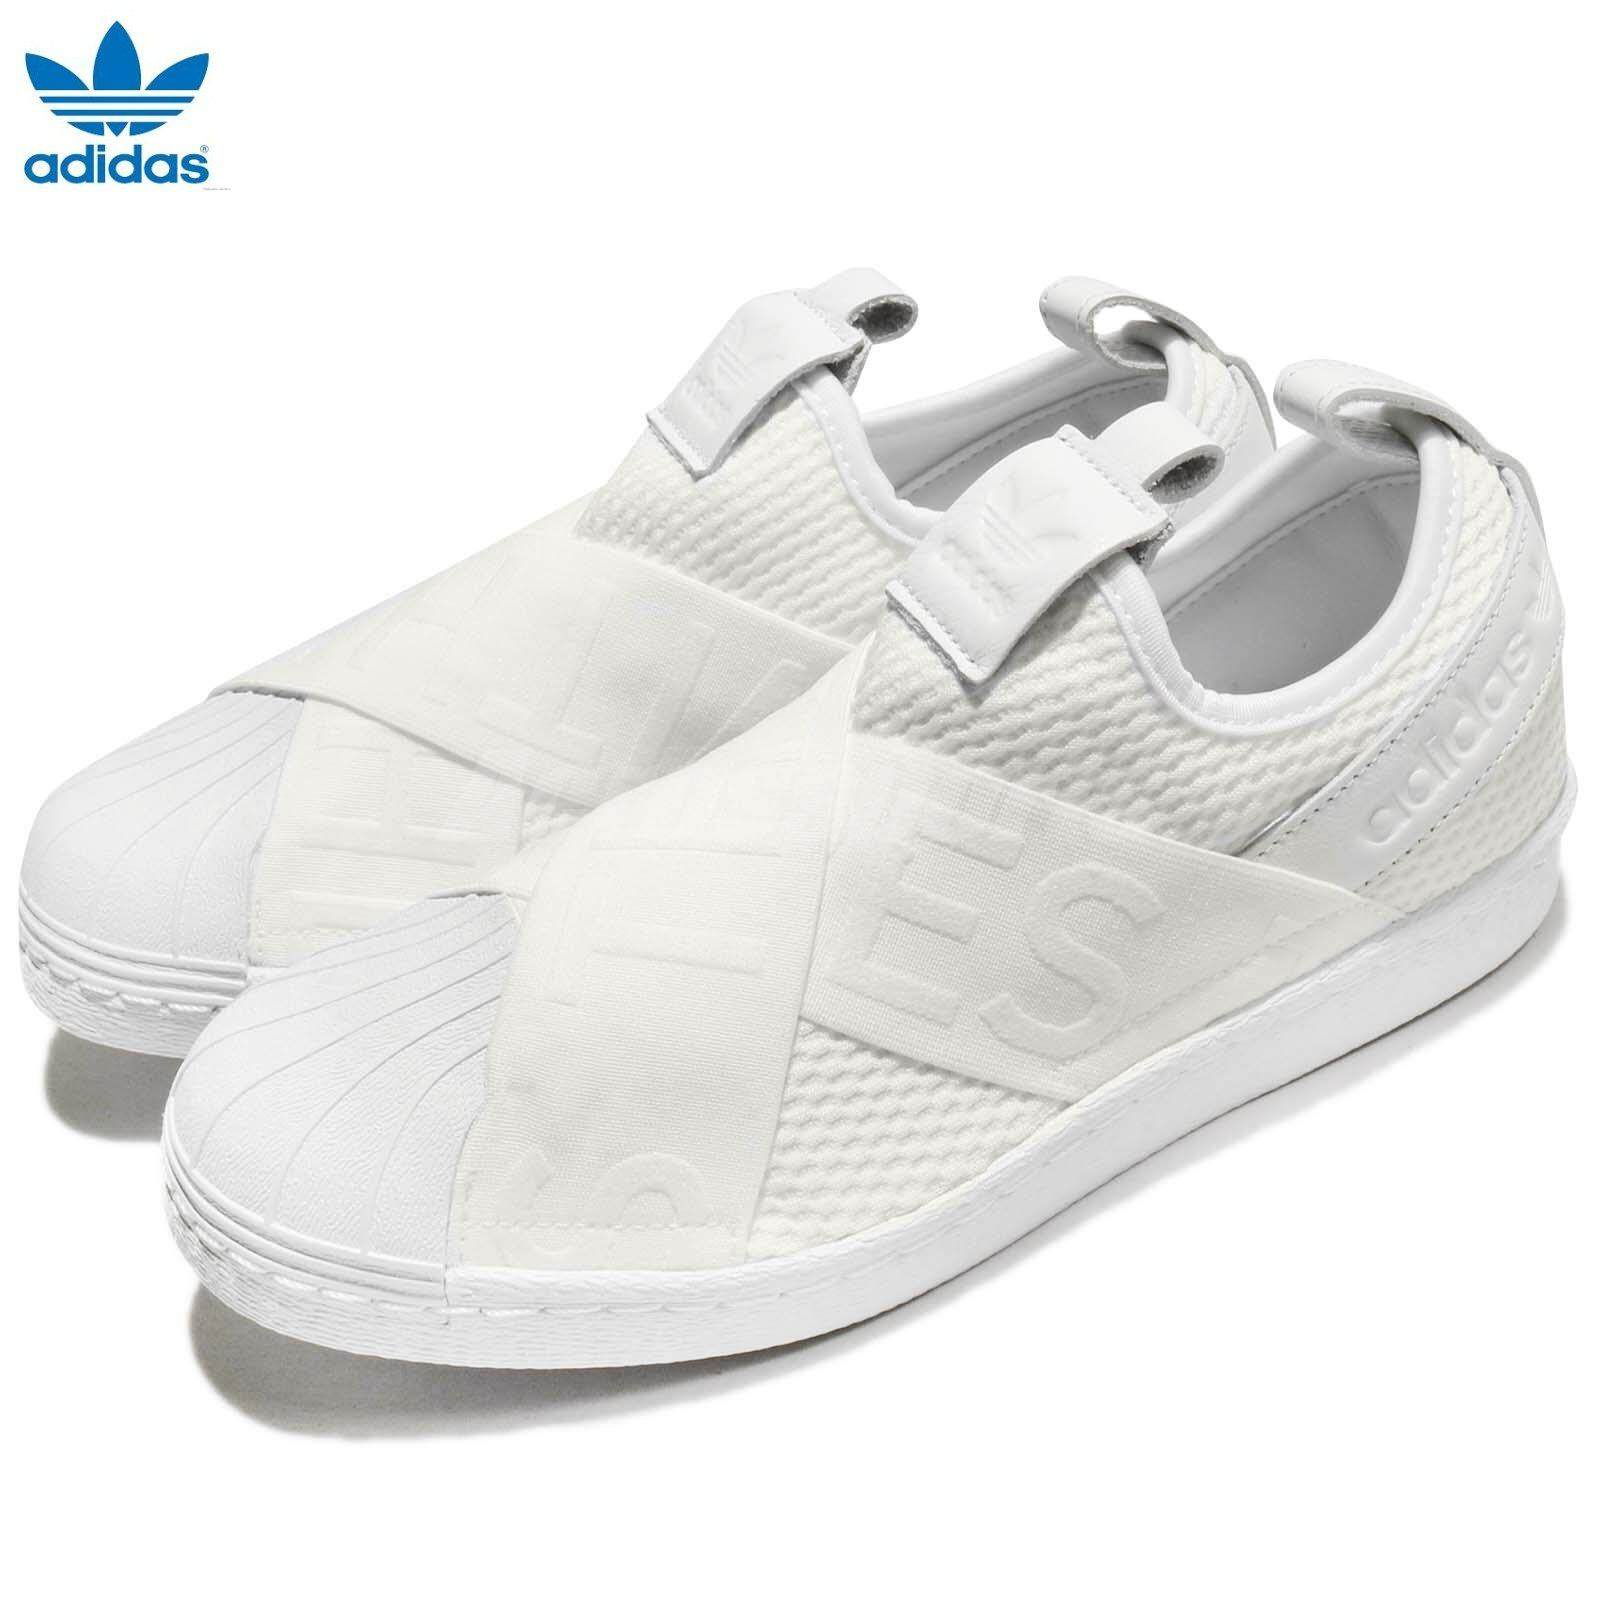 Adidas Baru Originals SUPERSTAR SLIP-ON CQ2381 (Cloude Putih) Sepatu 6fa69a9801